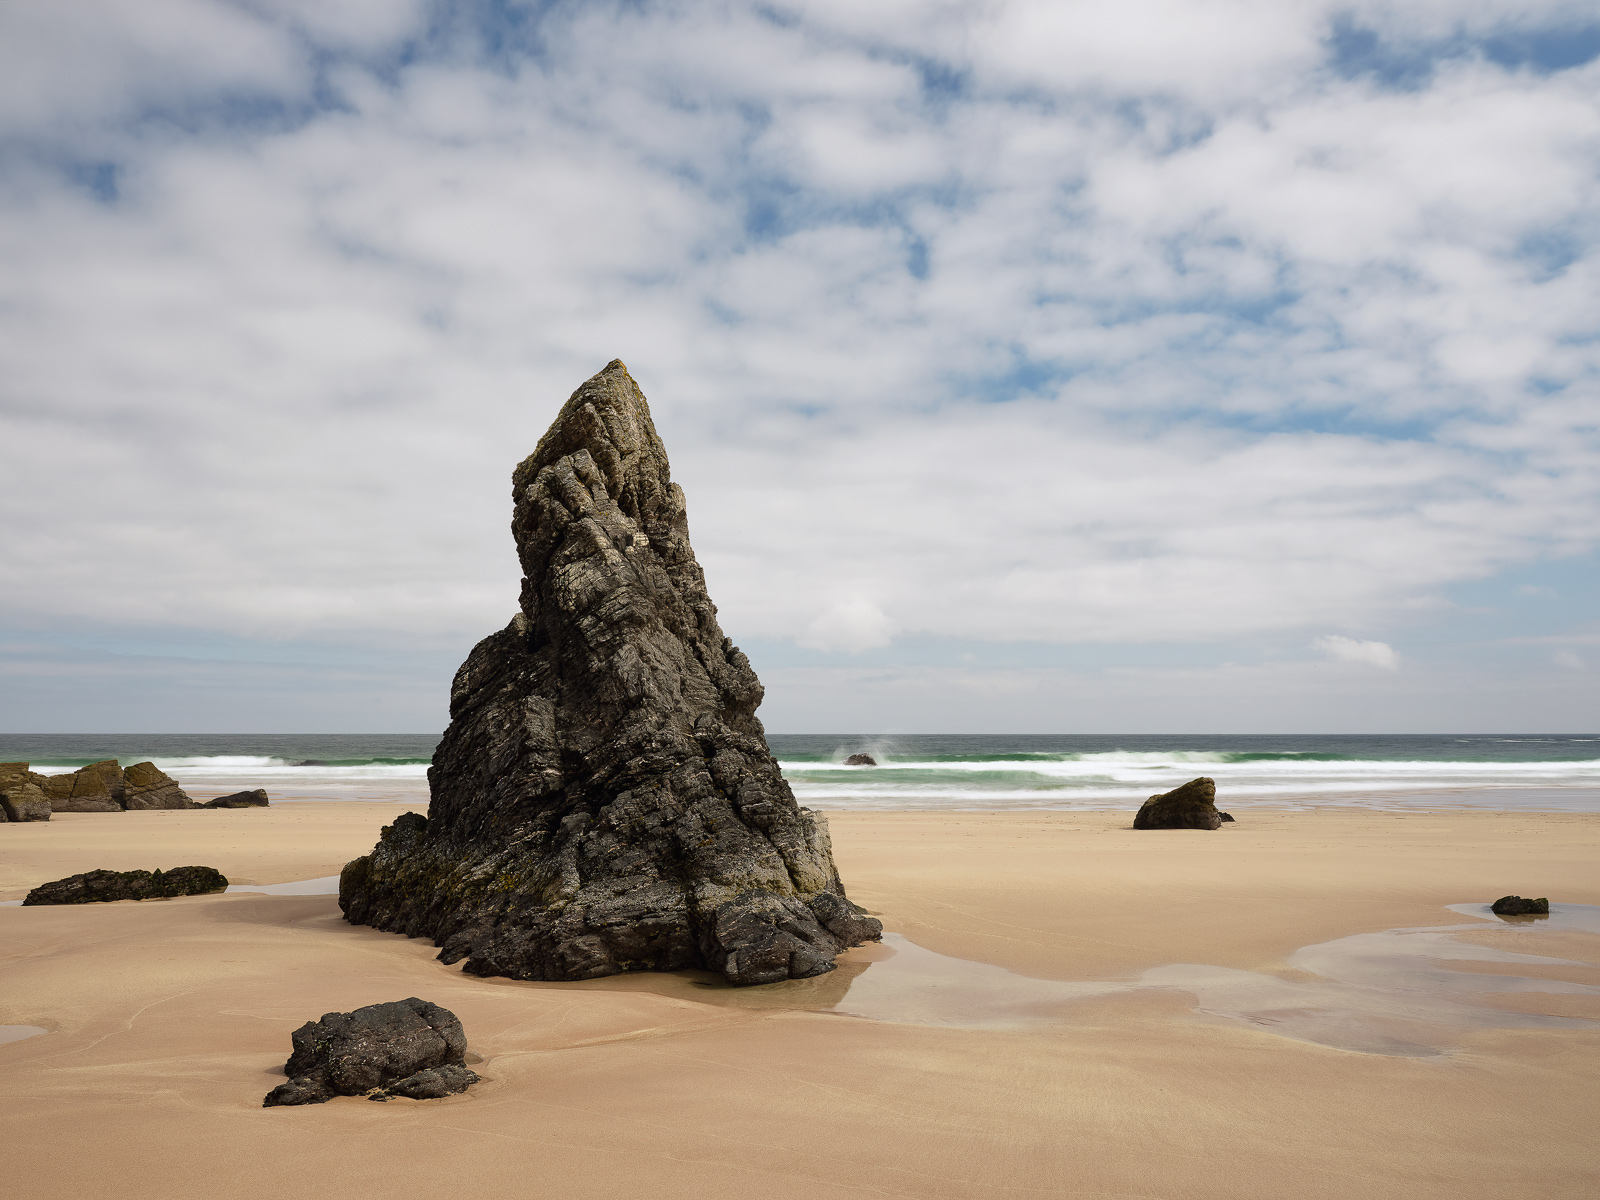 A conical rock stack at Sango Bay looks just like the one Harry Potter tried on when sorting out his House at Hogwarts.